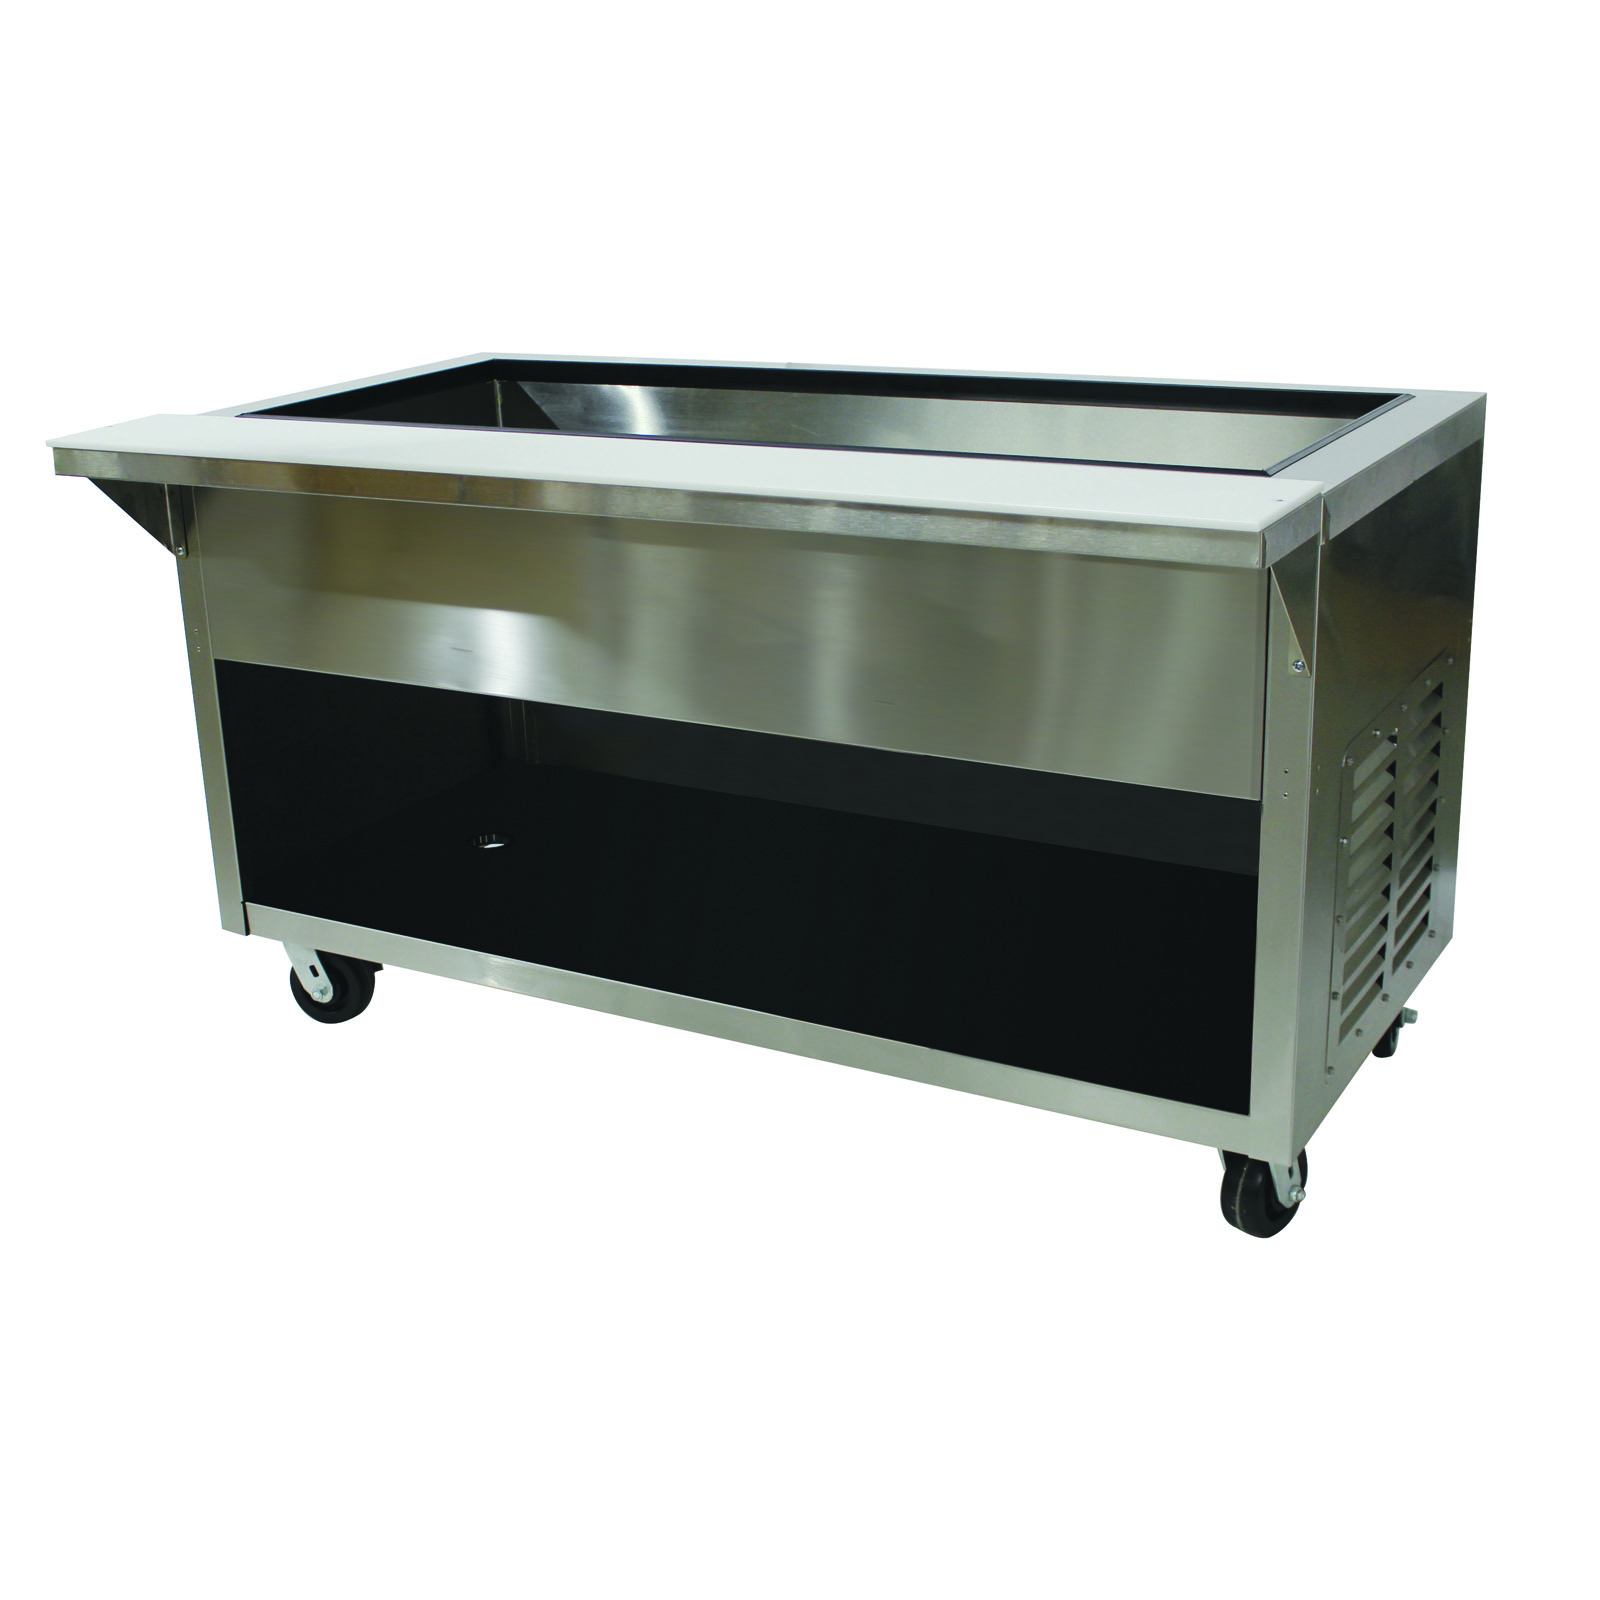 Advance Tabco HDCPU-3-BS serving counter, cold food